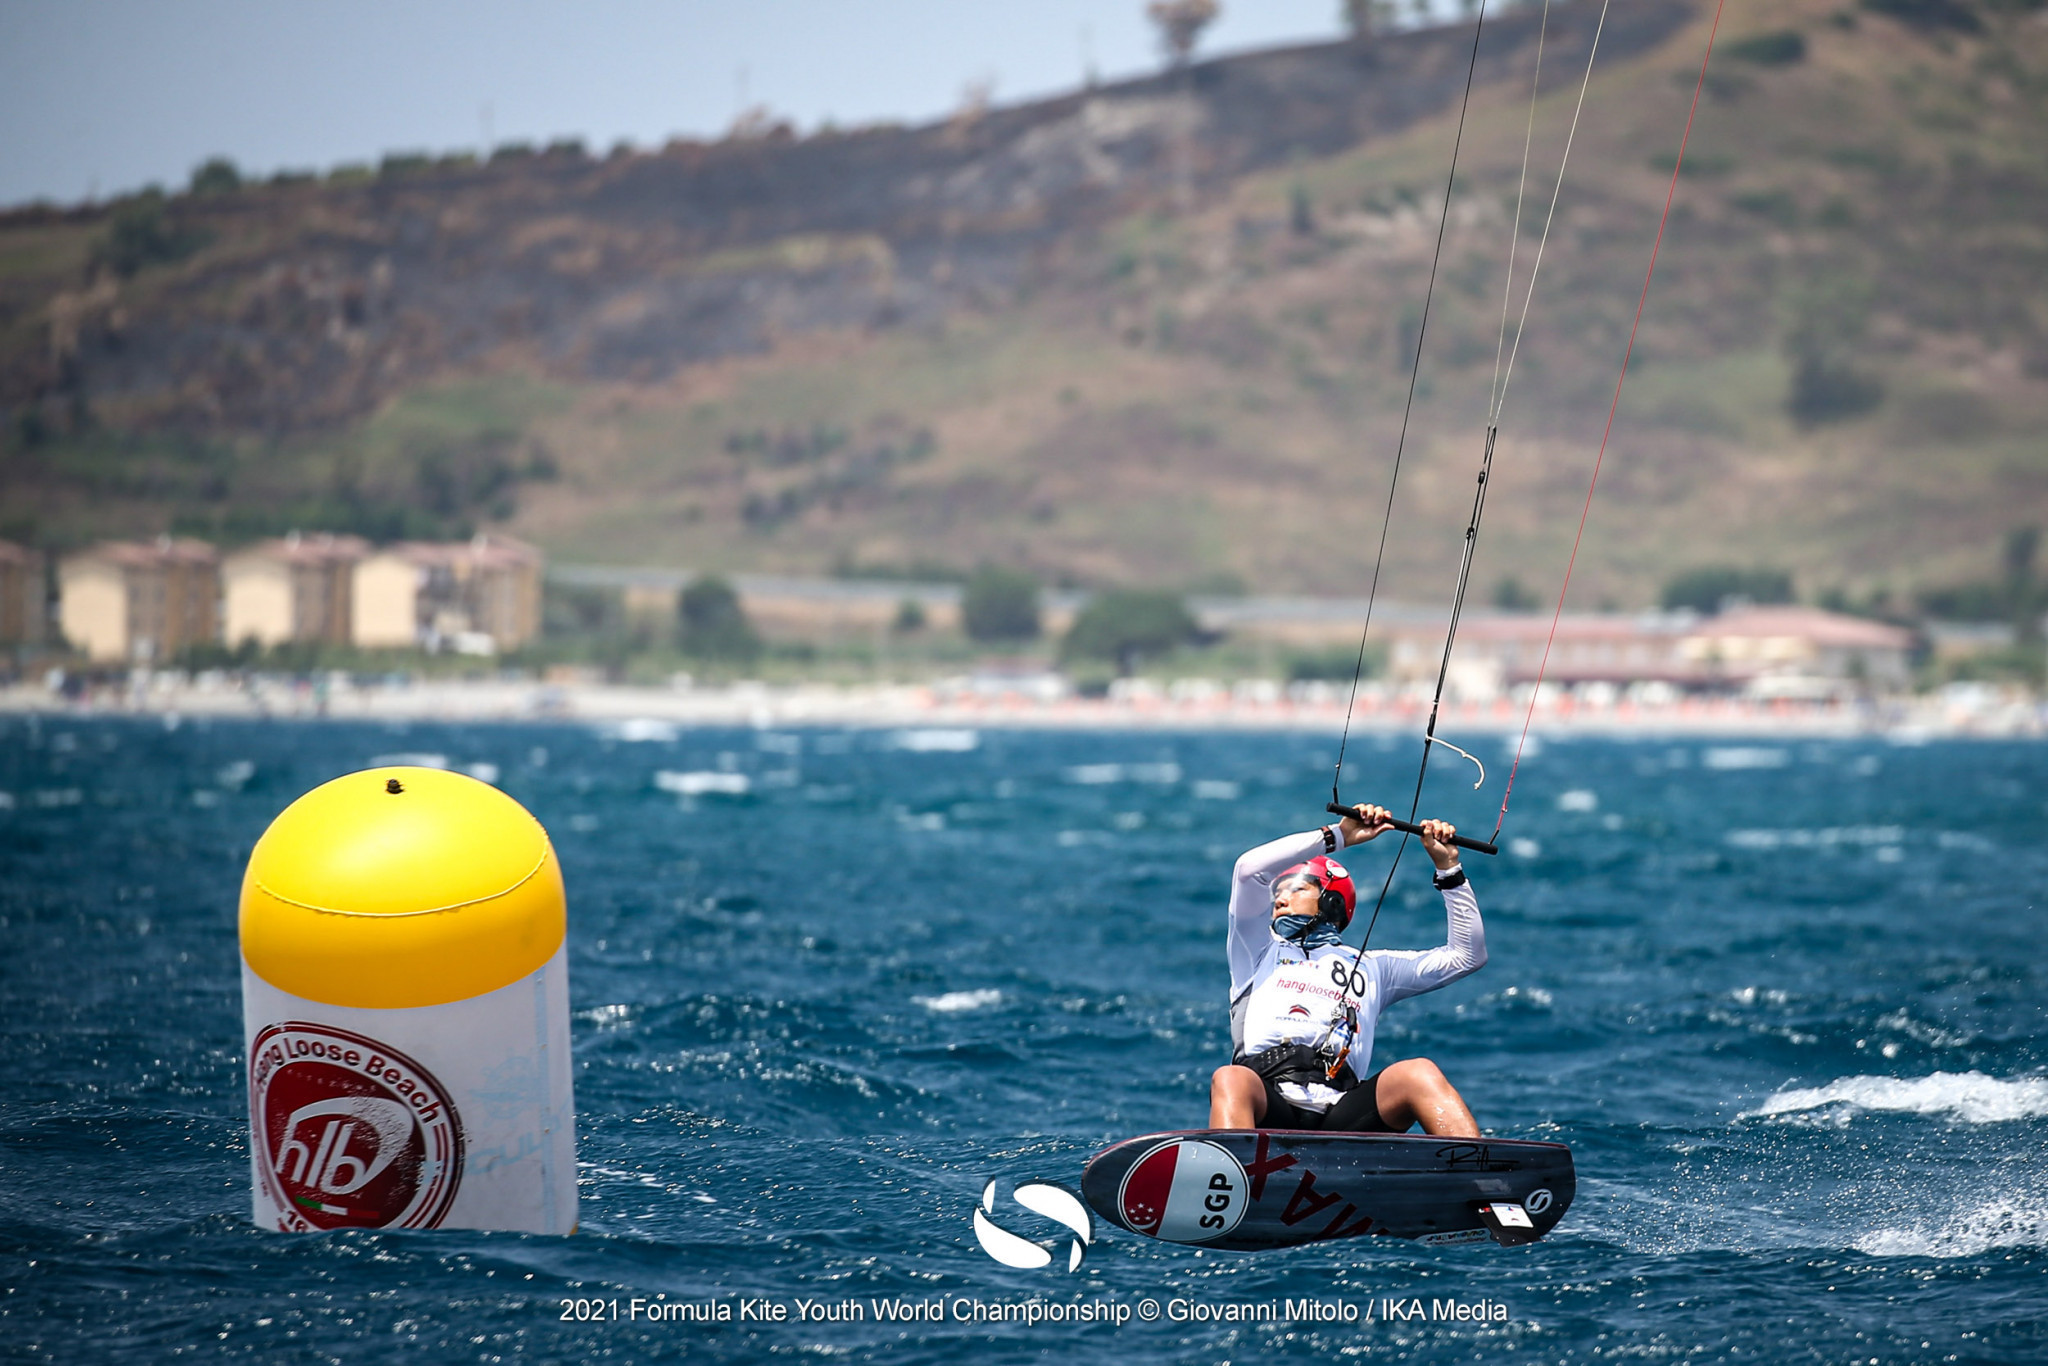 Leaders Damasiewicz and Maeder sail on at Formula Kite Under-19 World Championships